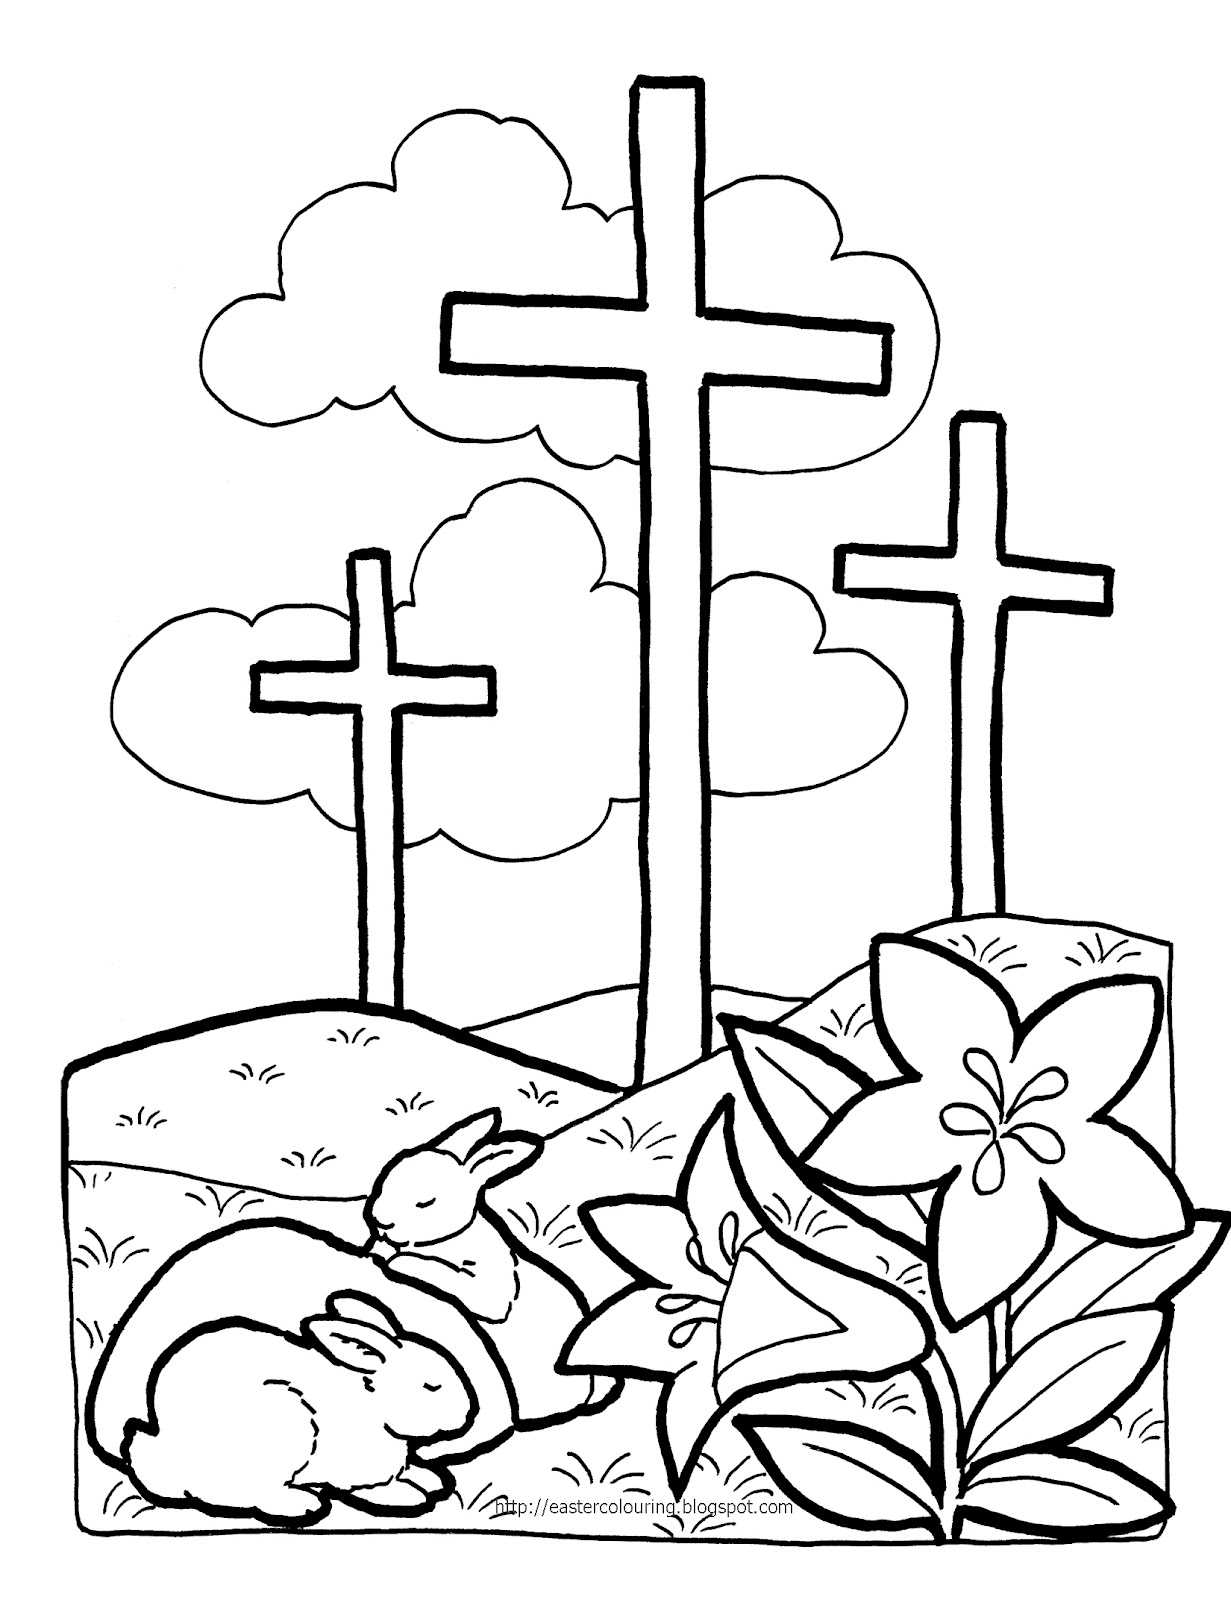 free christian easter coloring pages religious easter coloring pages for kids easter is the christian easter pages coloring free